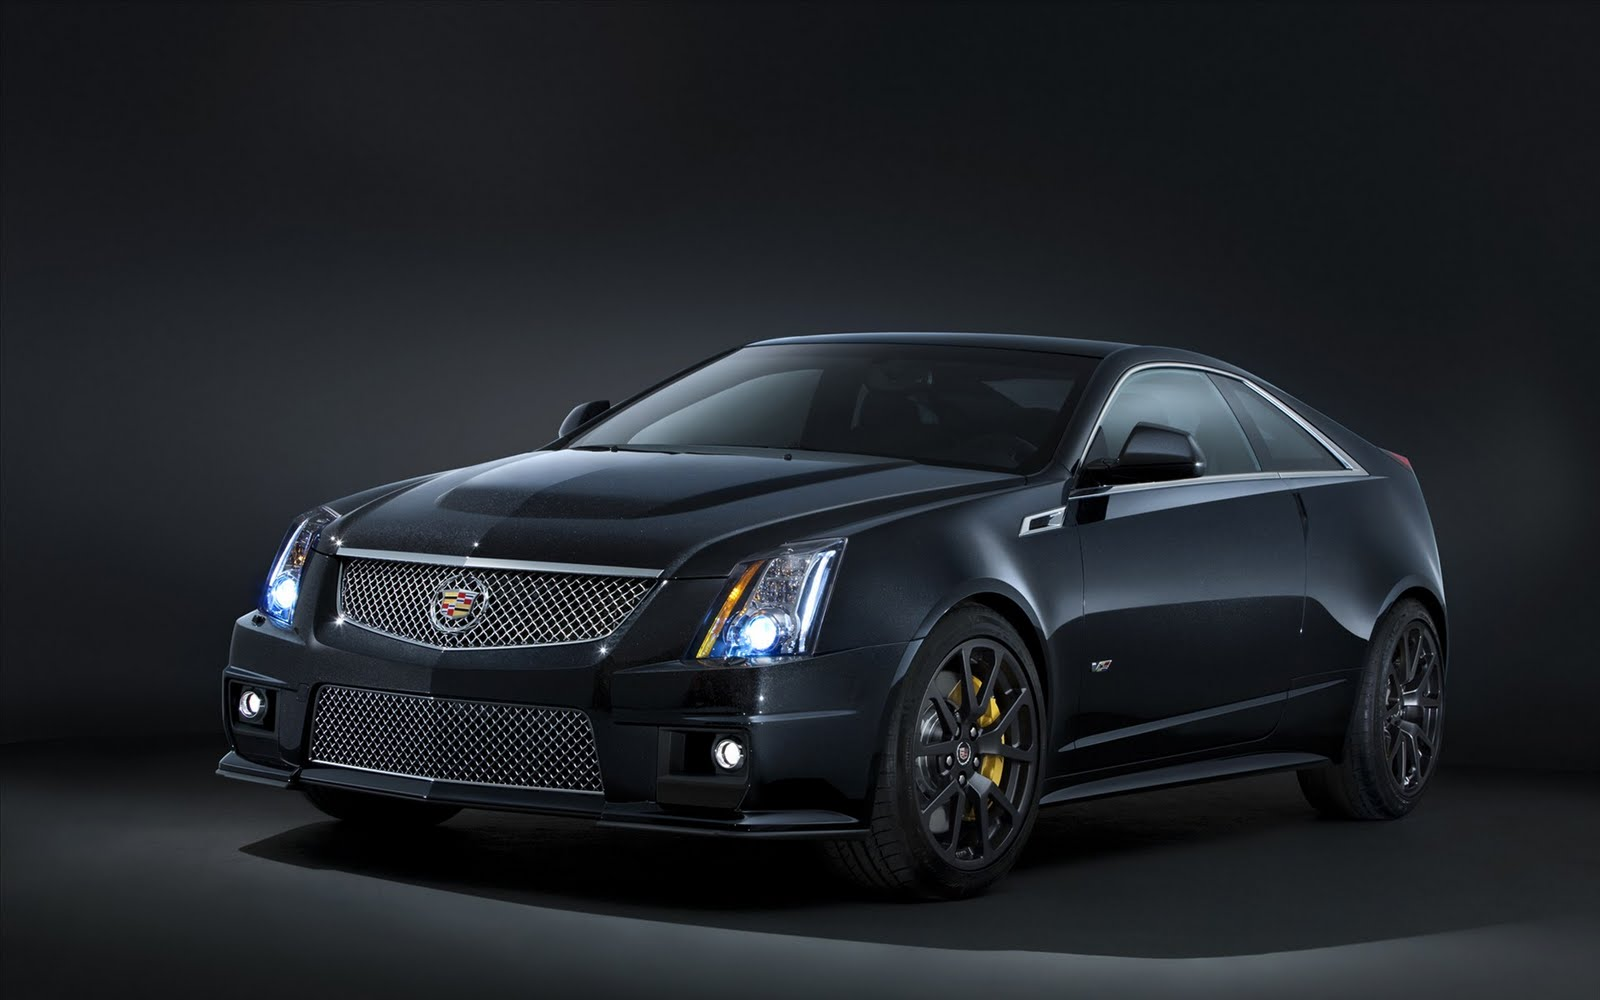 cars review used 2011 cadillac cts v black diamond edition price details. Black Bedroom Furniture Sets. Home Design Ideas